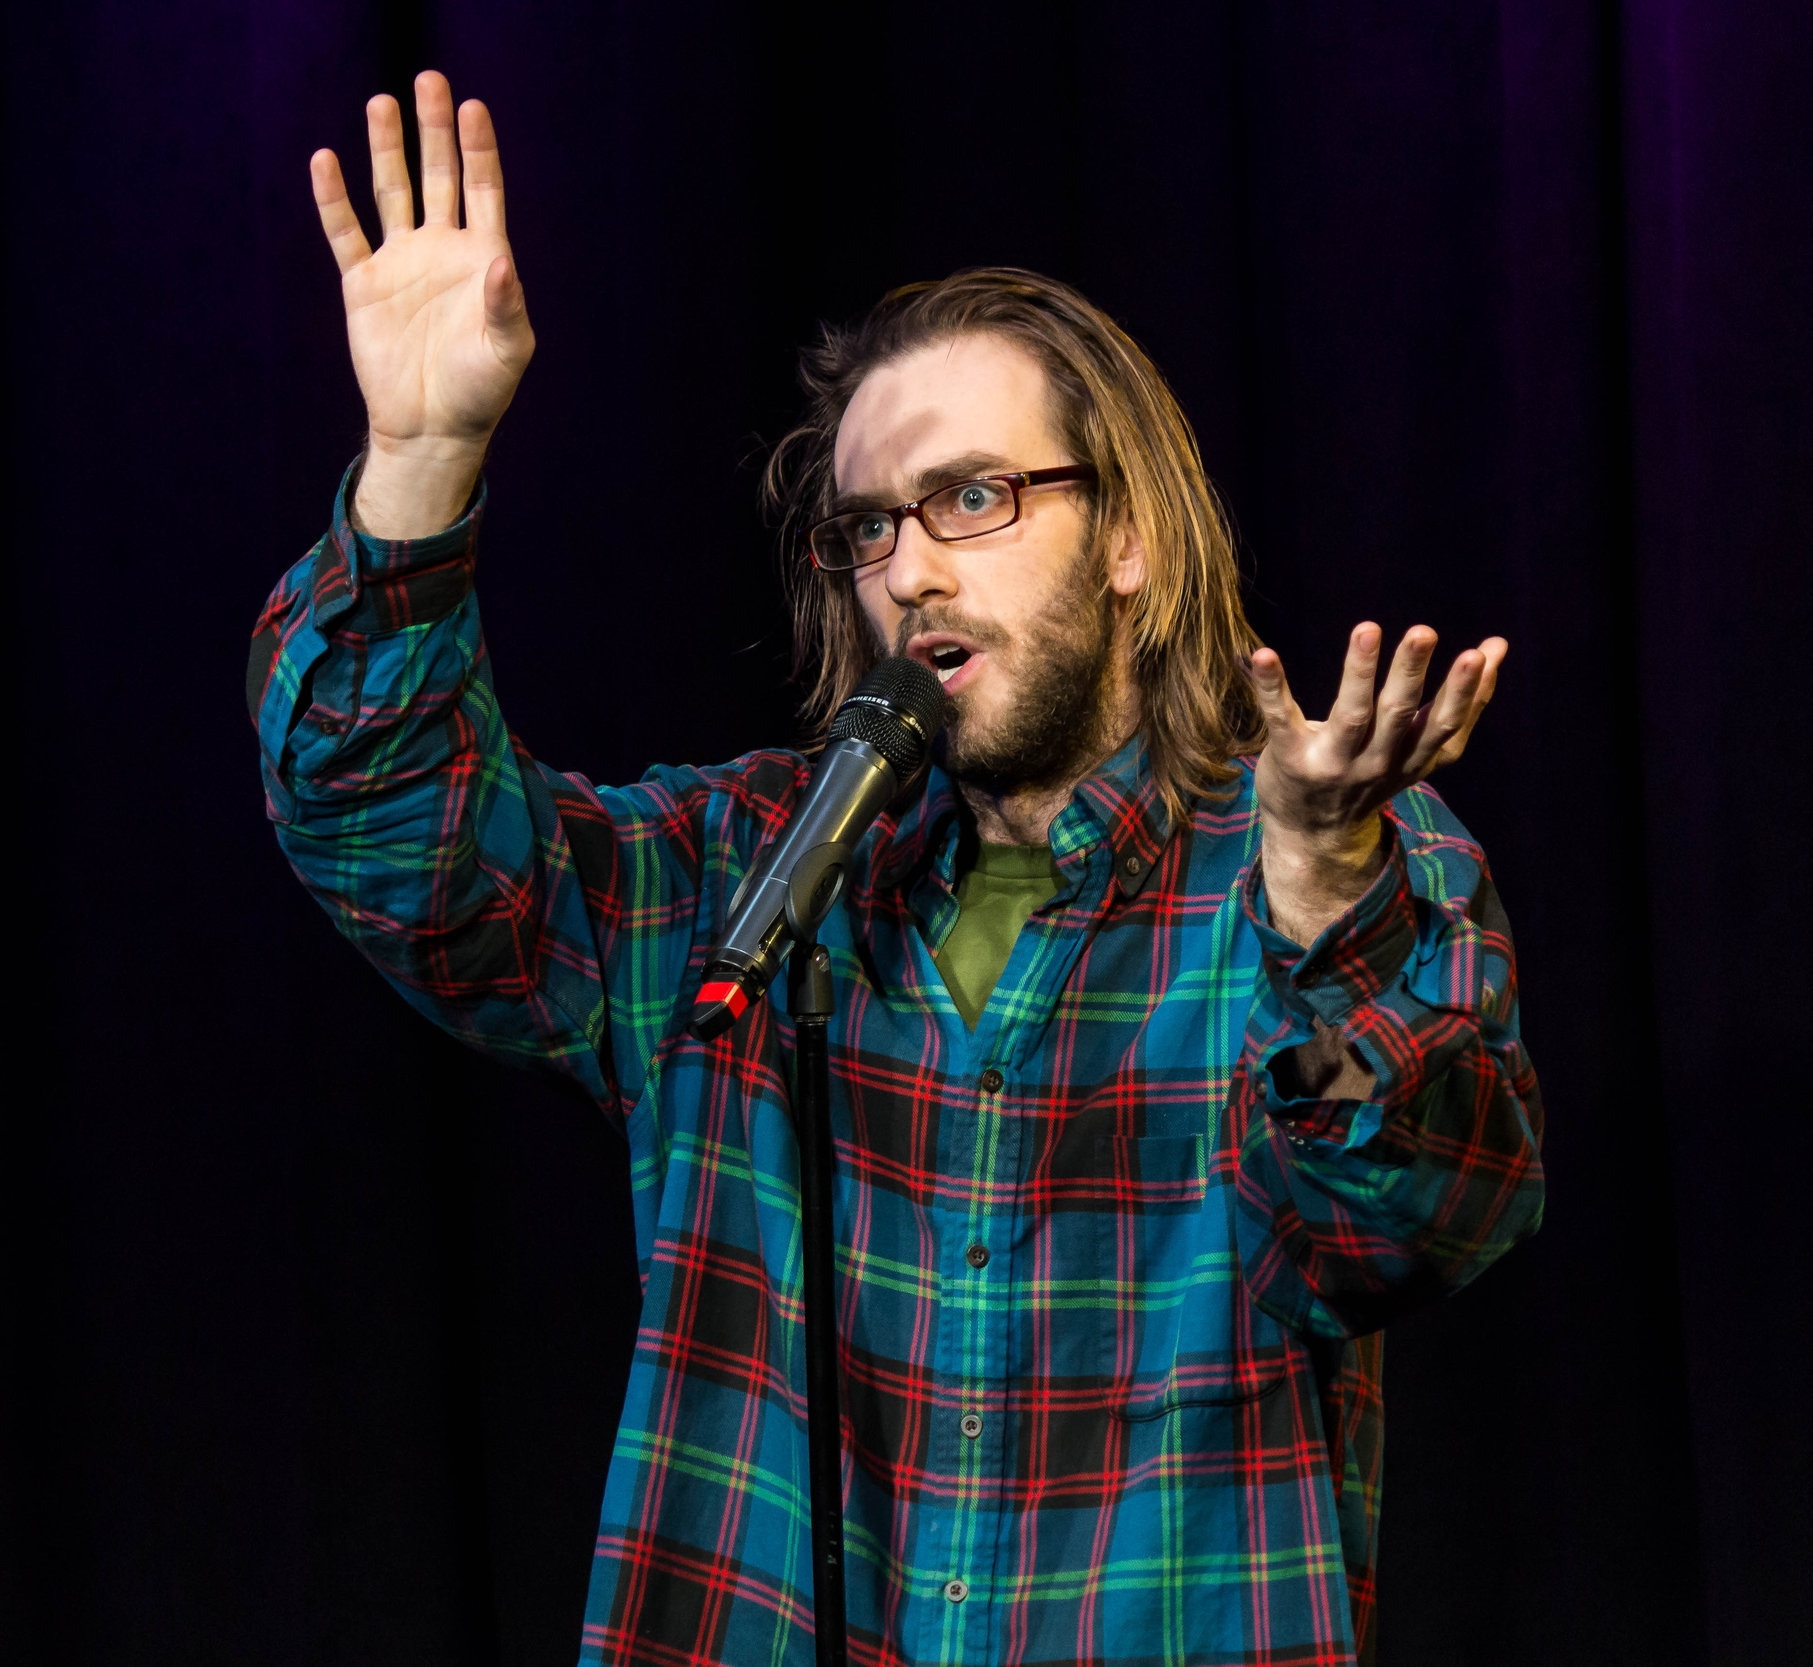 Nisse Greenberg shares his story at Caveat in New York in March 2018. Photo by Nicholas Santasier.